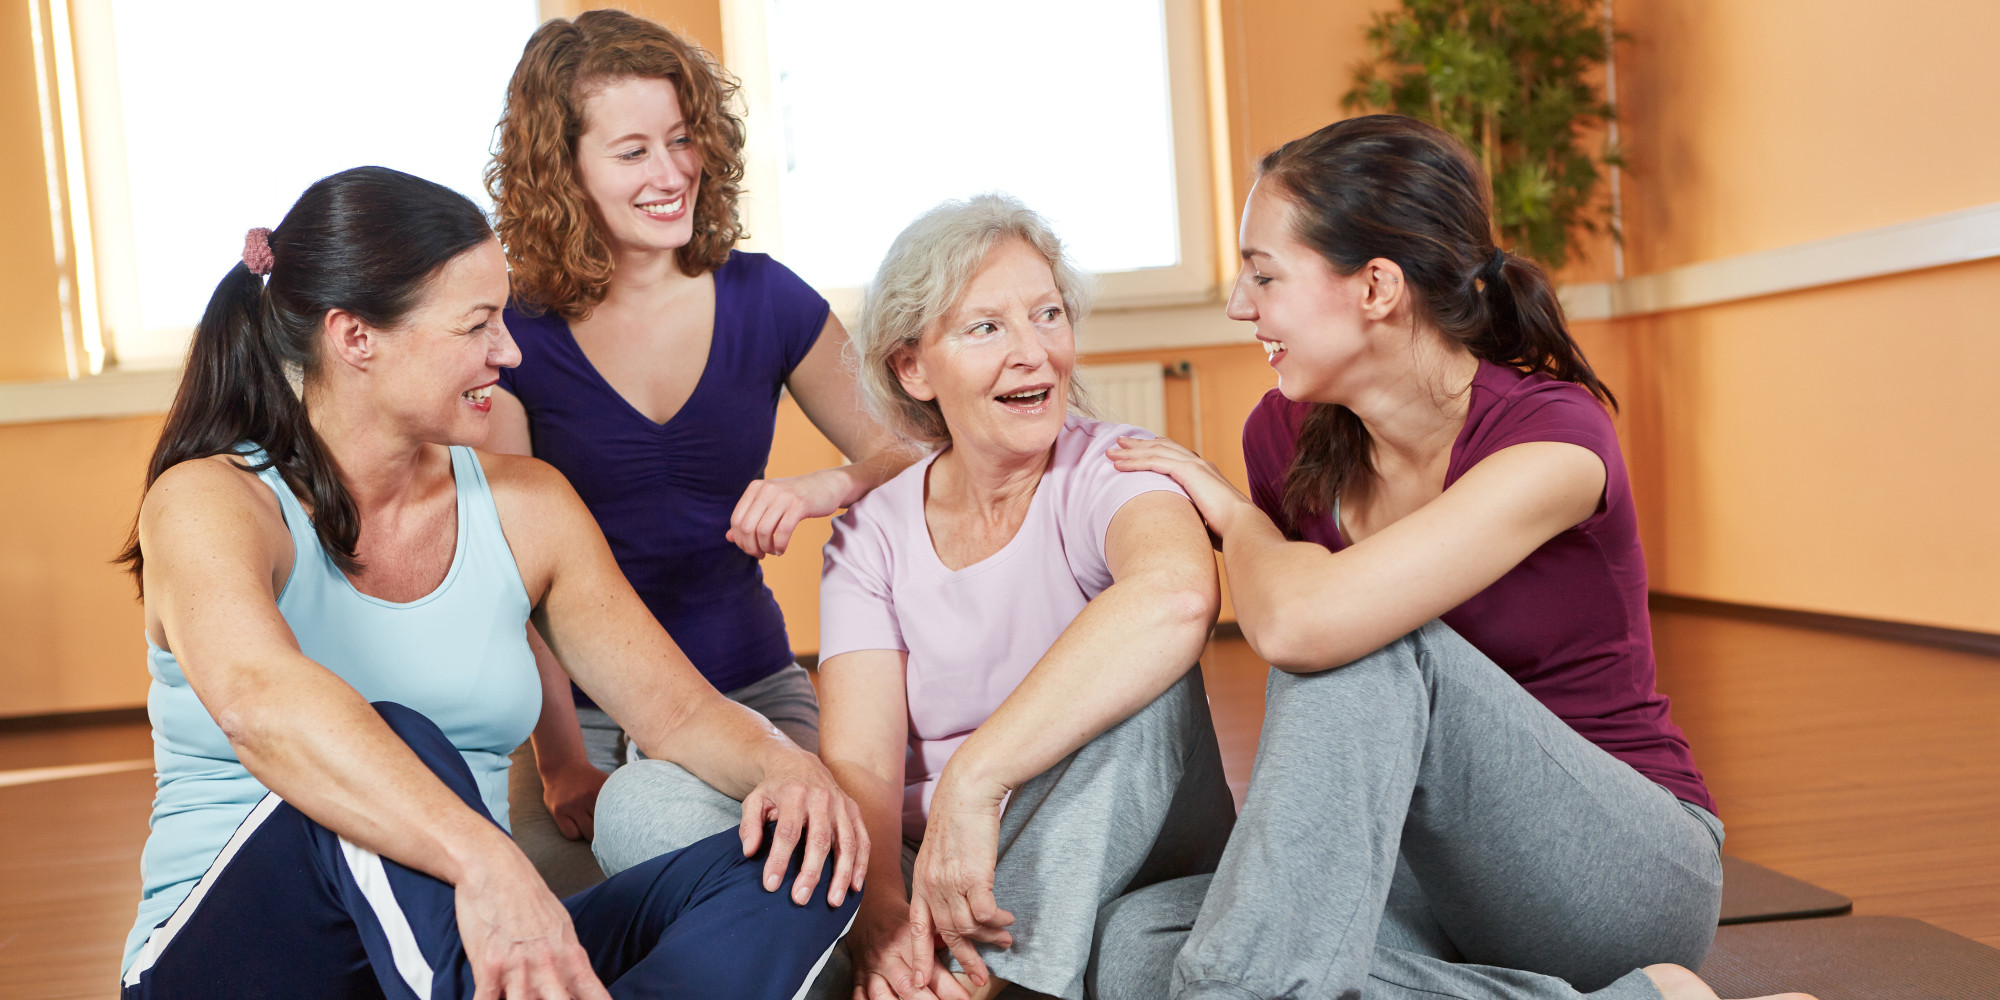 See Why Women Were At Greater Risk Of Stroke, Dementia, Parkinson's